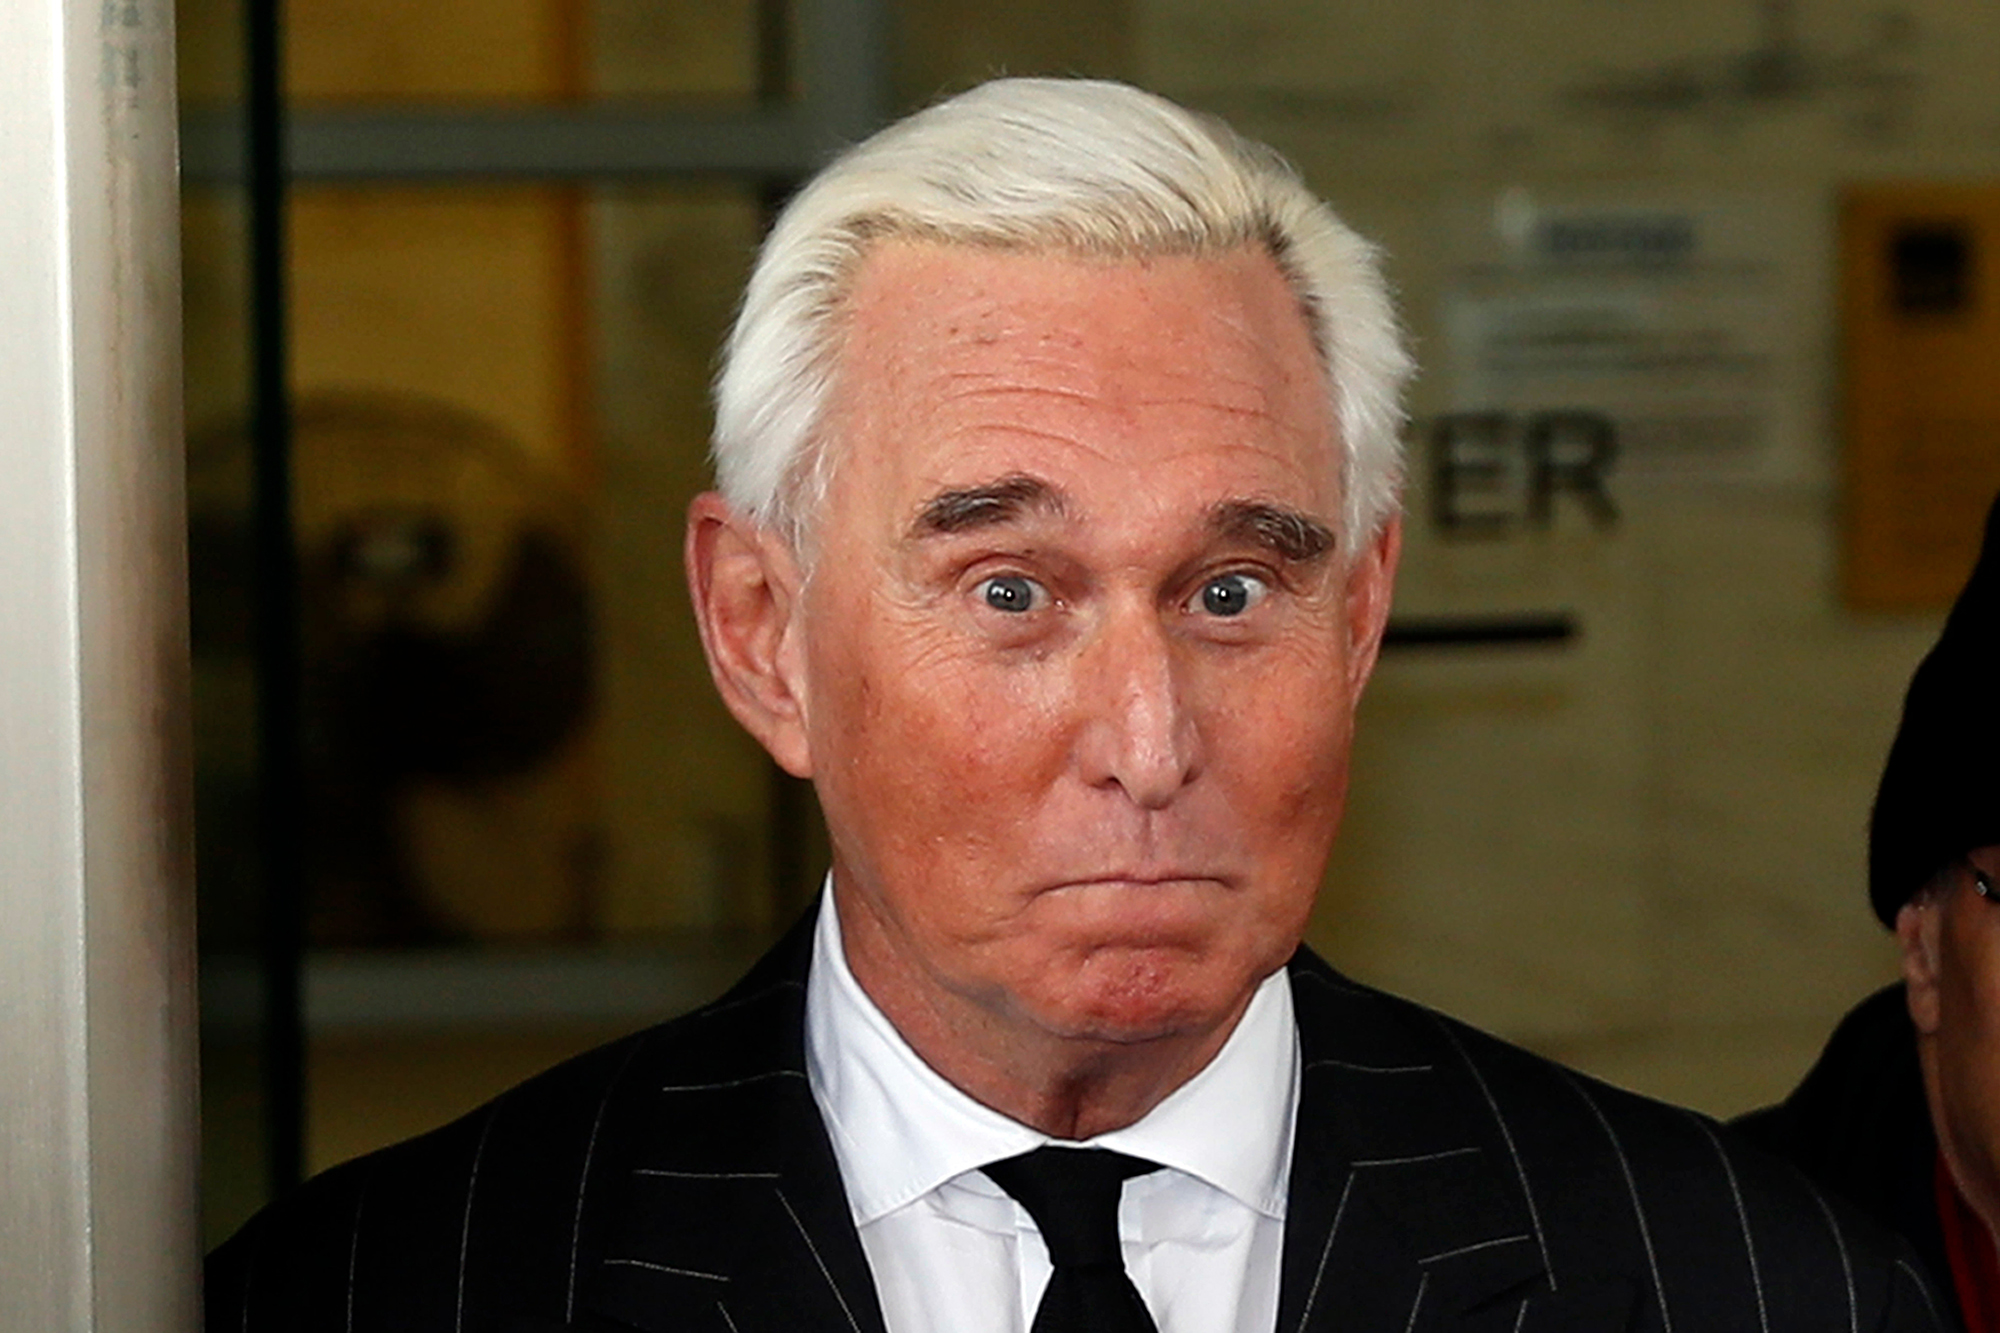 Roger Stone's attorney bizarrely claims he has been ...